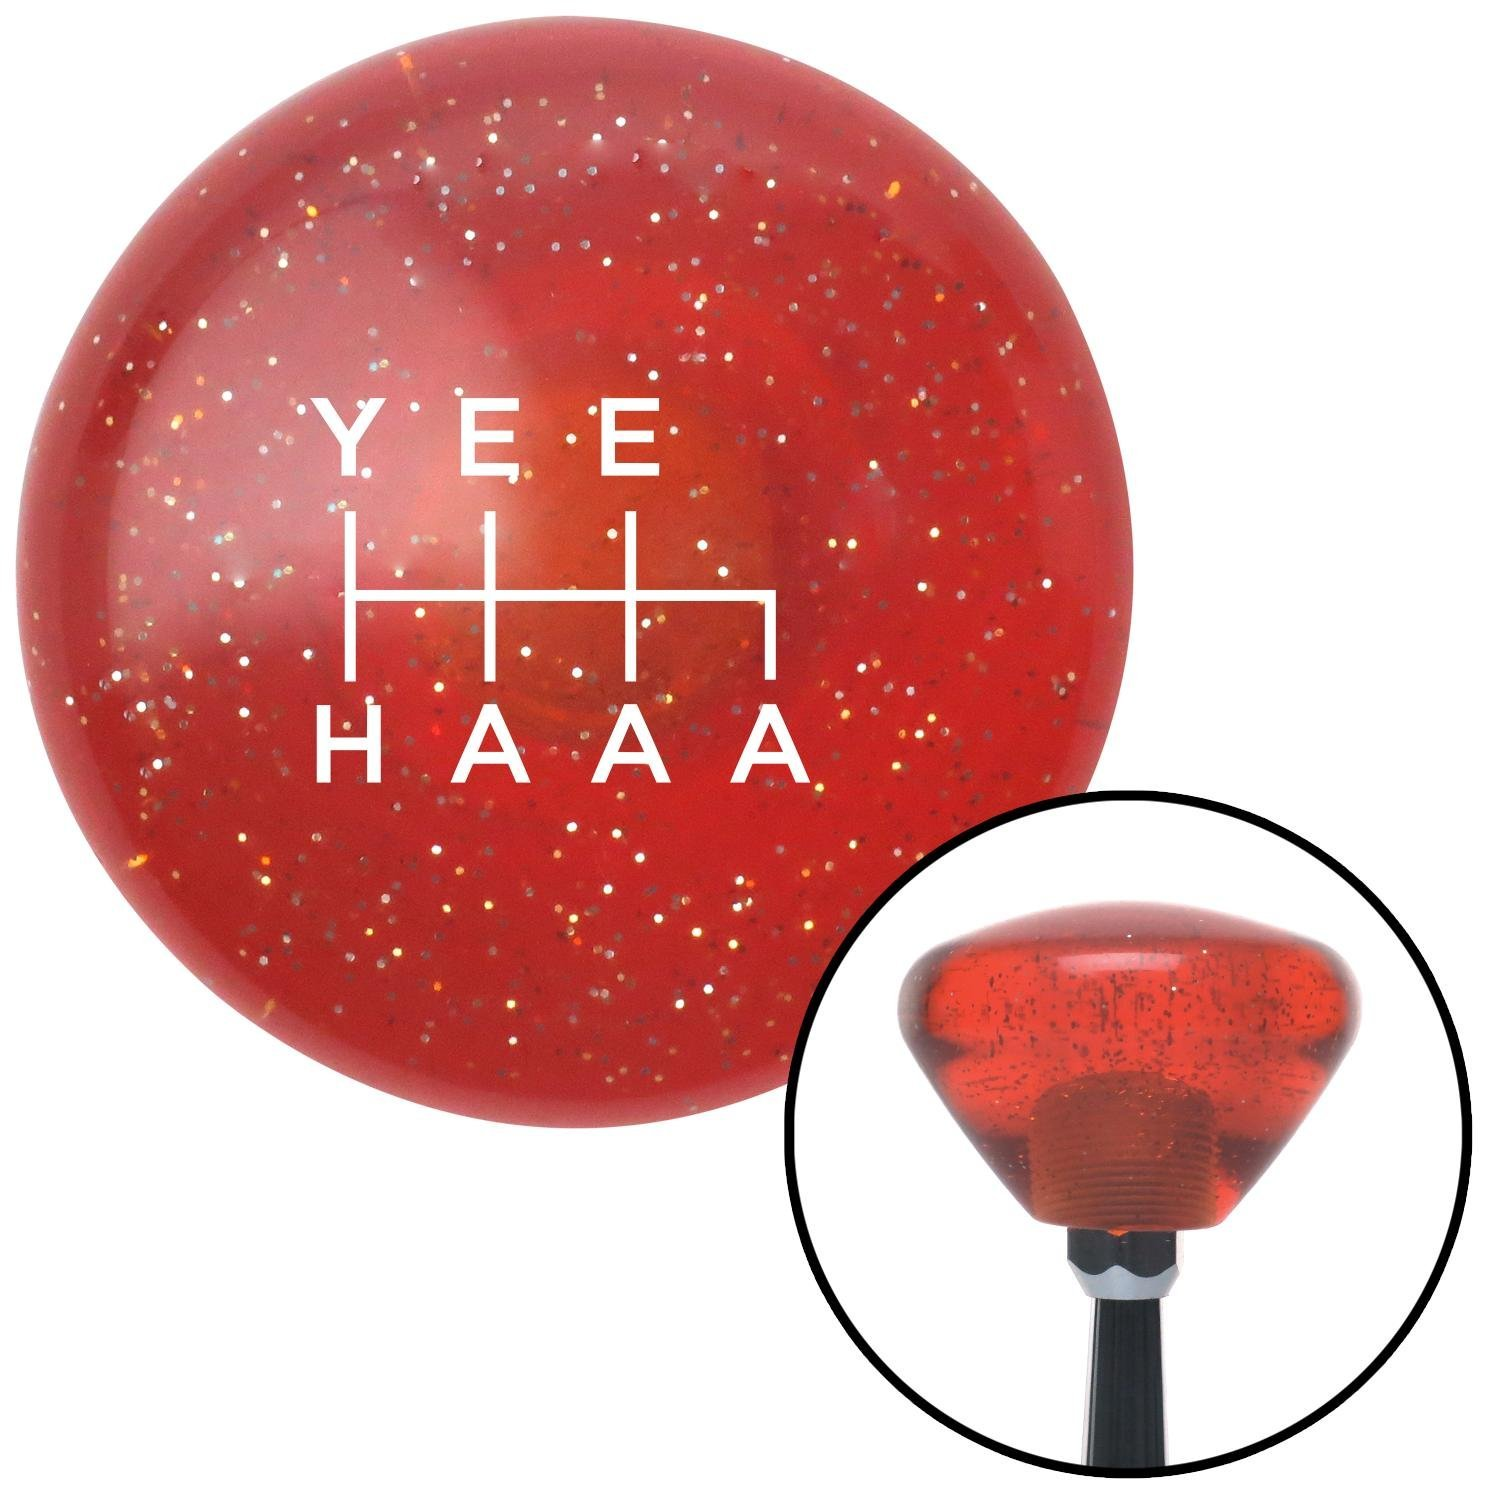 American Shifter 183979 Orange Retro Metal Flake Shift Knob with M16 x 1.5 Insert White Yee Haaa